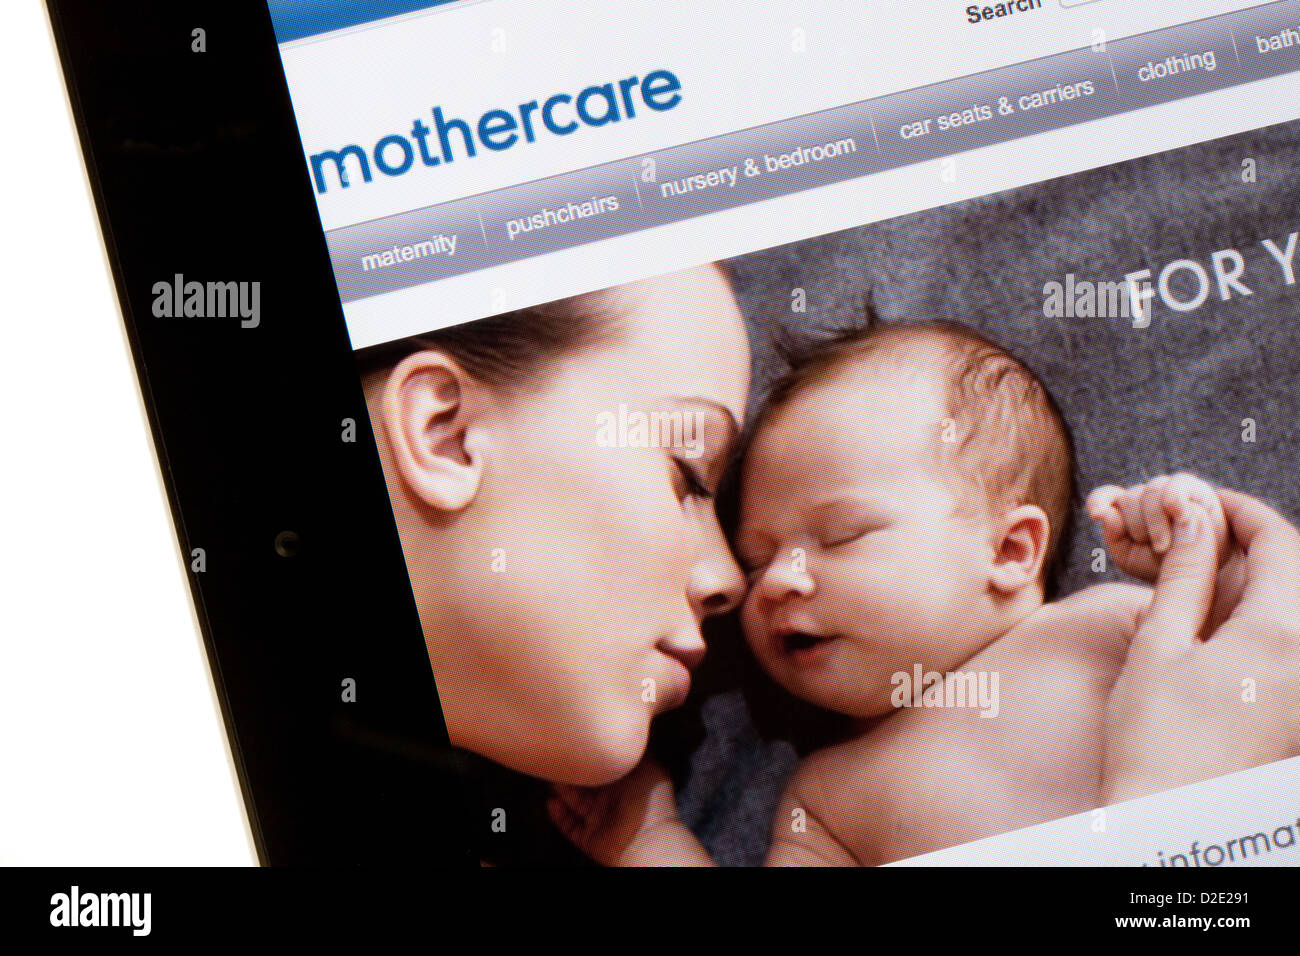 Mothercare website for shopping on the internet; on an iPad, UK - Stock Image